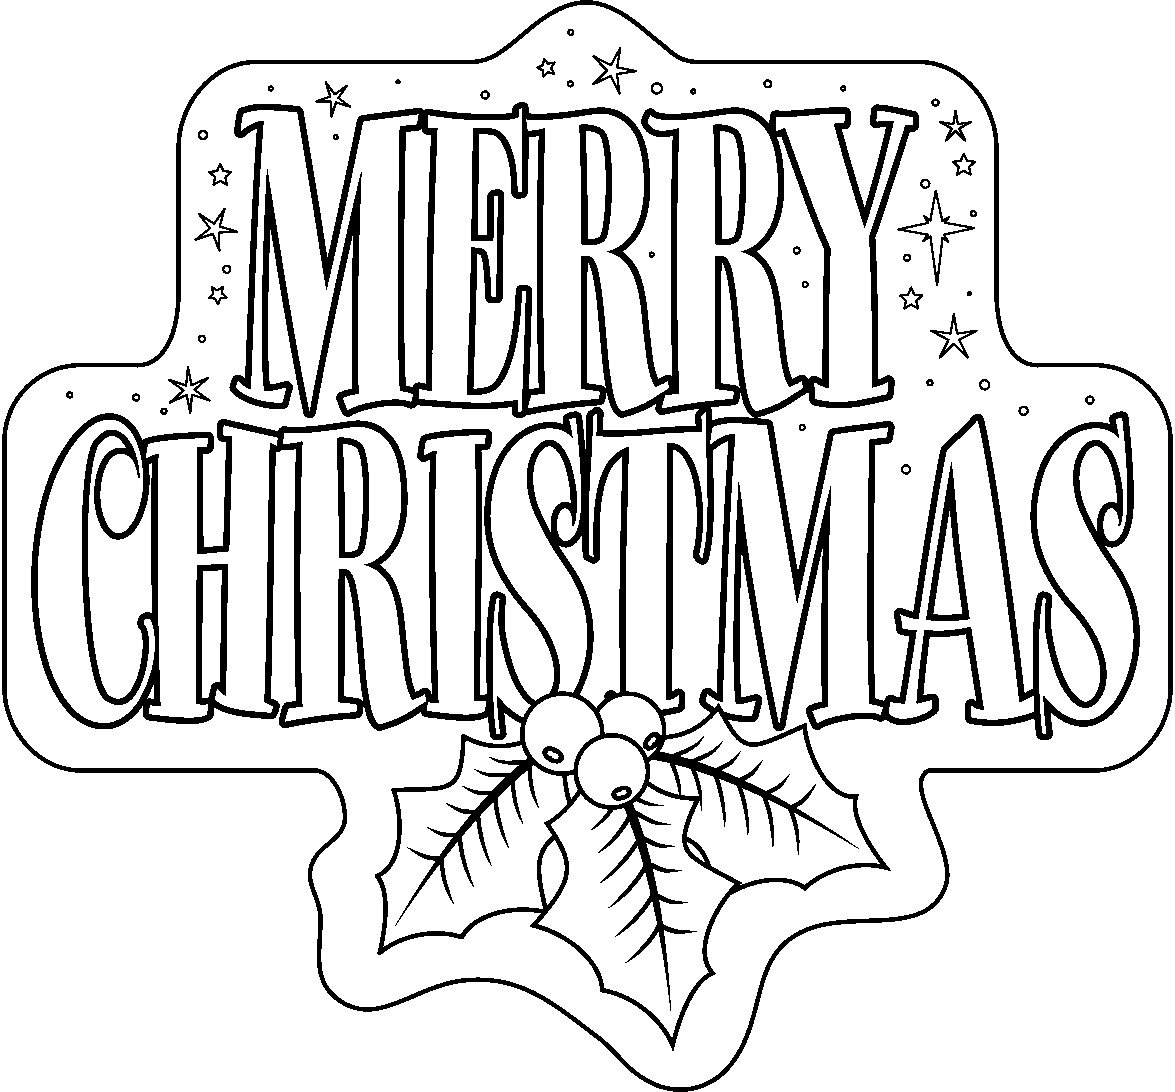 Merry Christmas Coloring In With Free Printable Pages